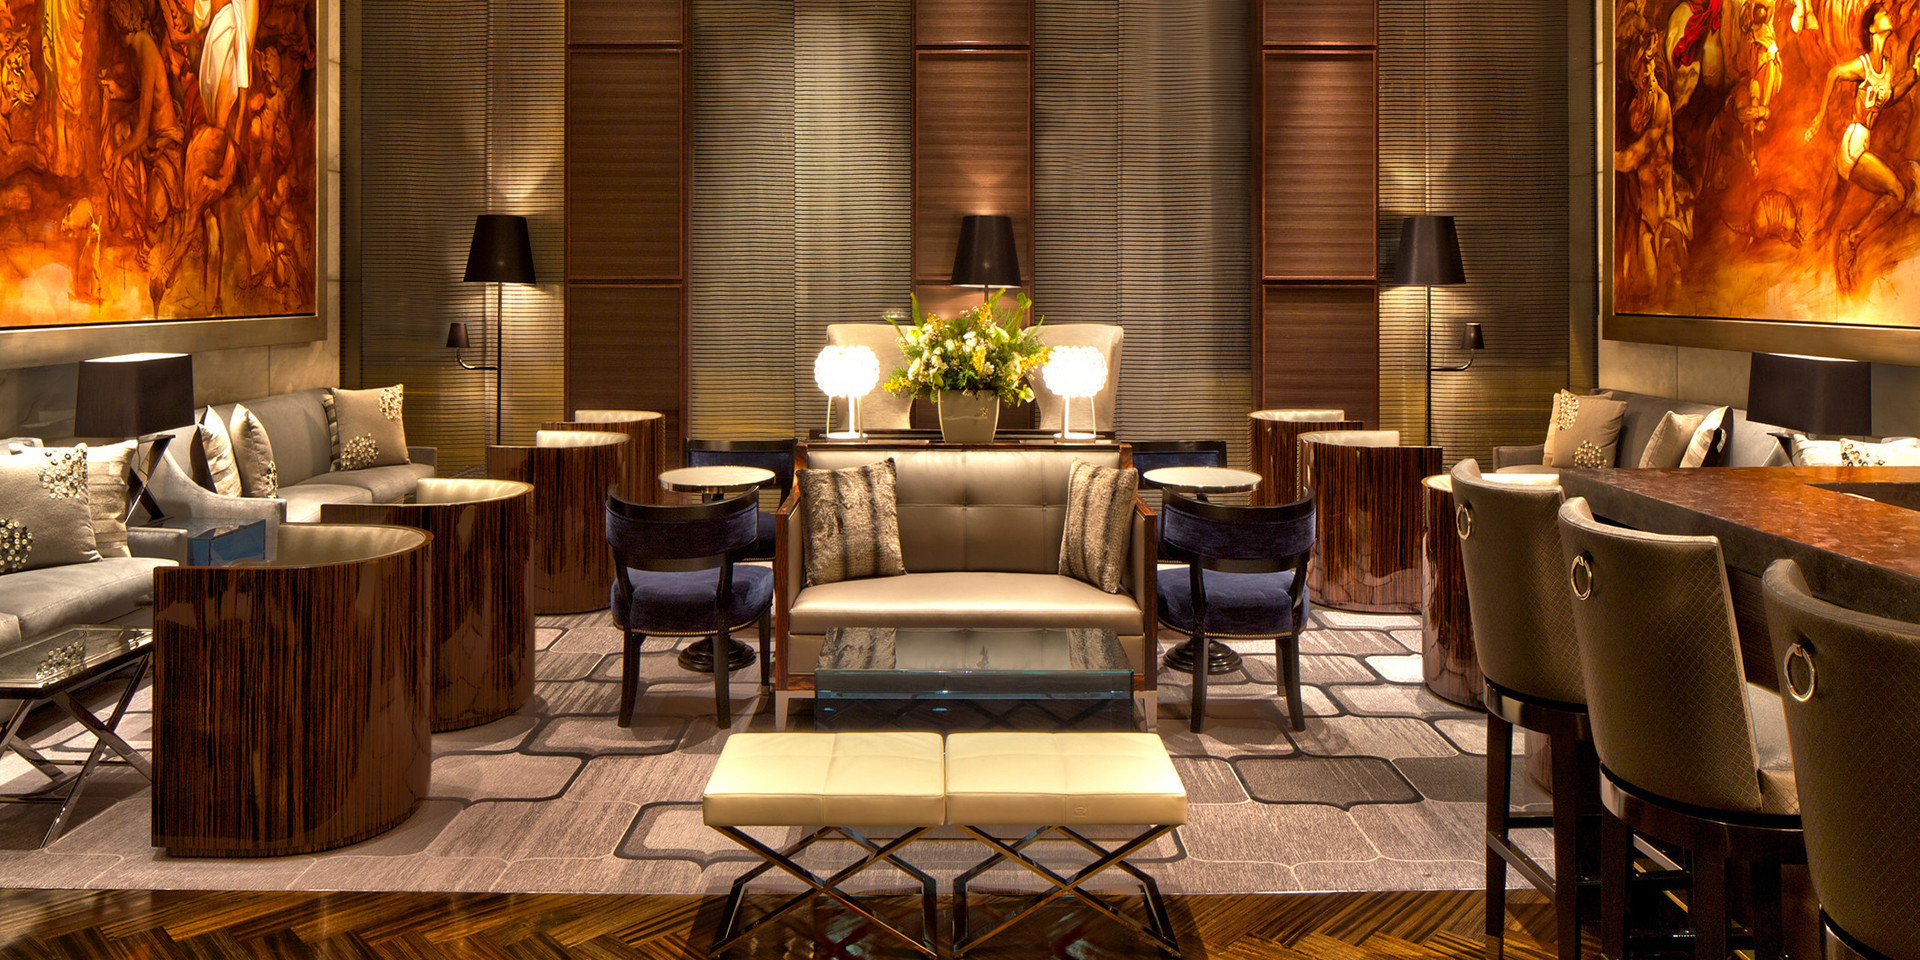 saint regis dating site The st regis new york redefines luxury in the heart of nyc visit our historic, iconic hotel in midtown manhattan.